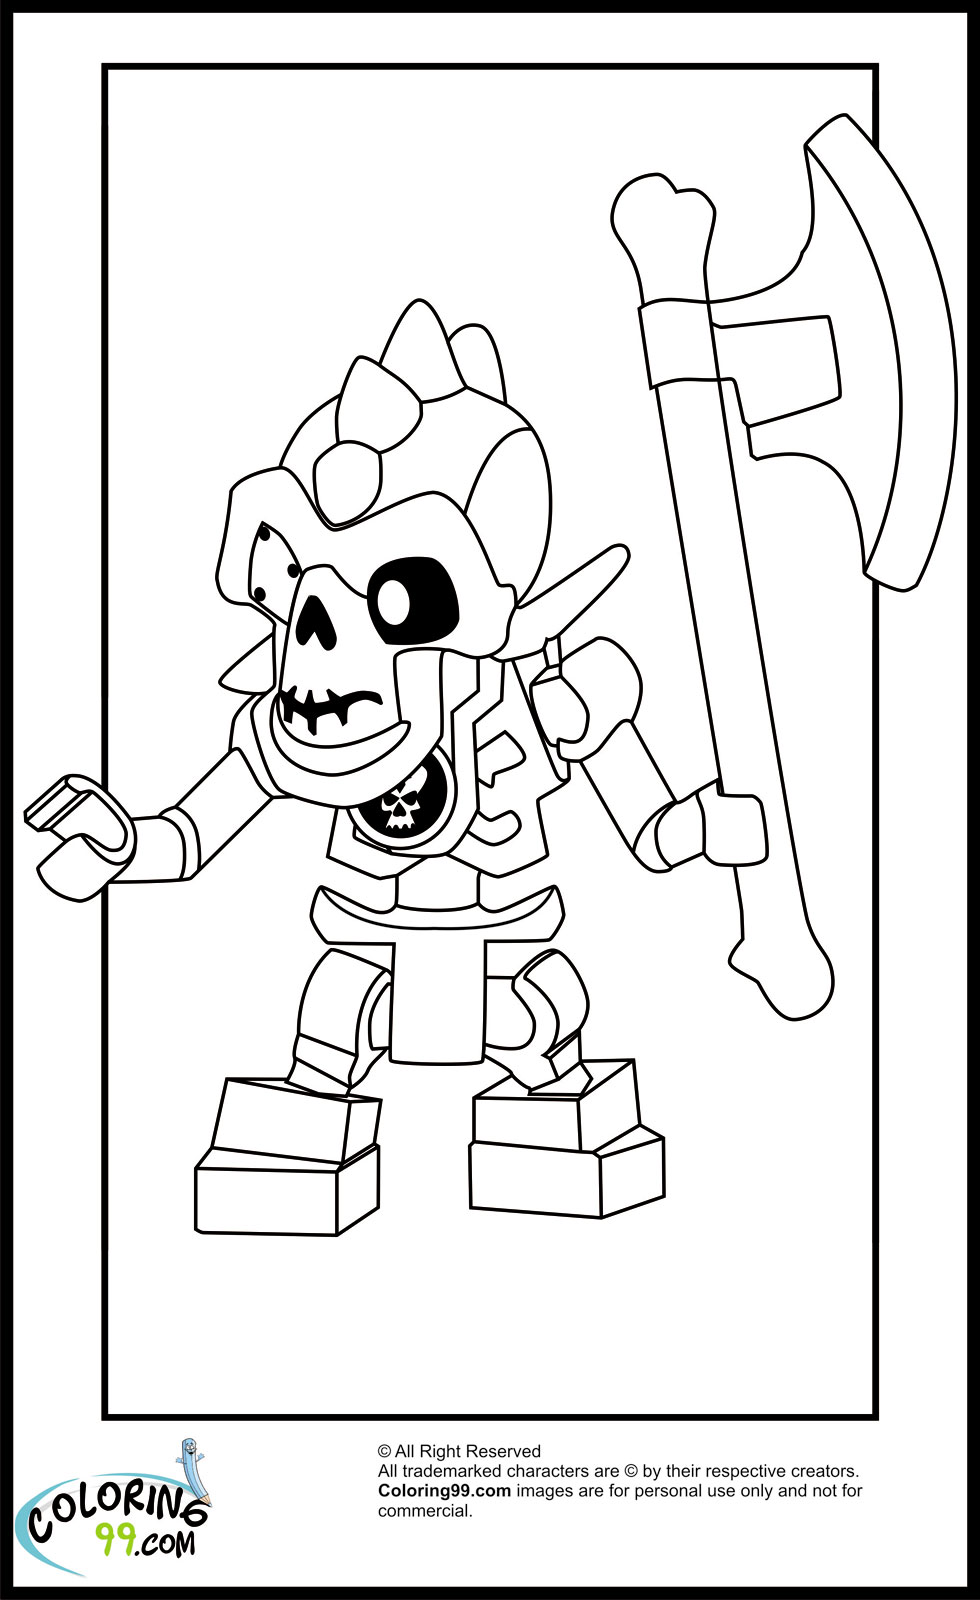 This is an image of Delicate ninjago coloring picture